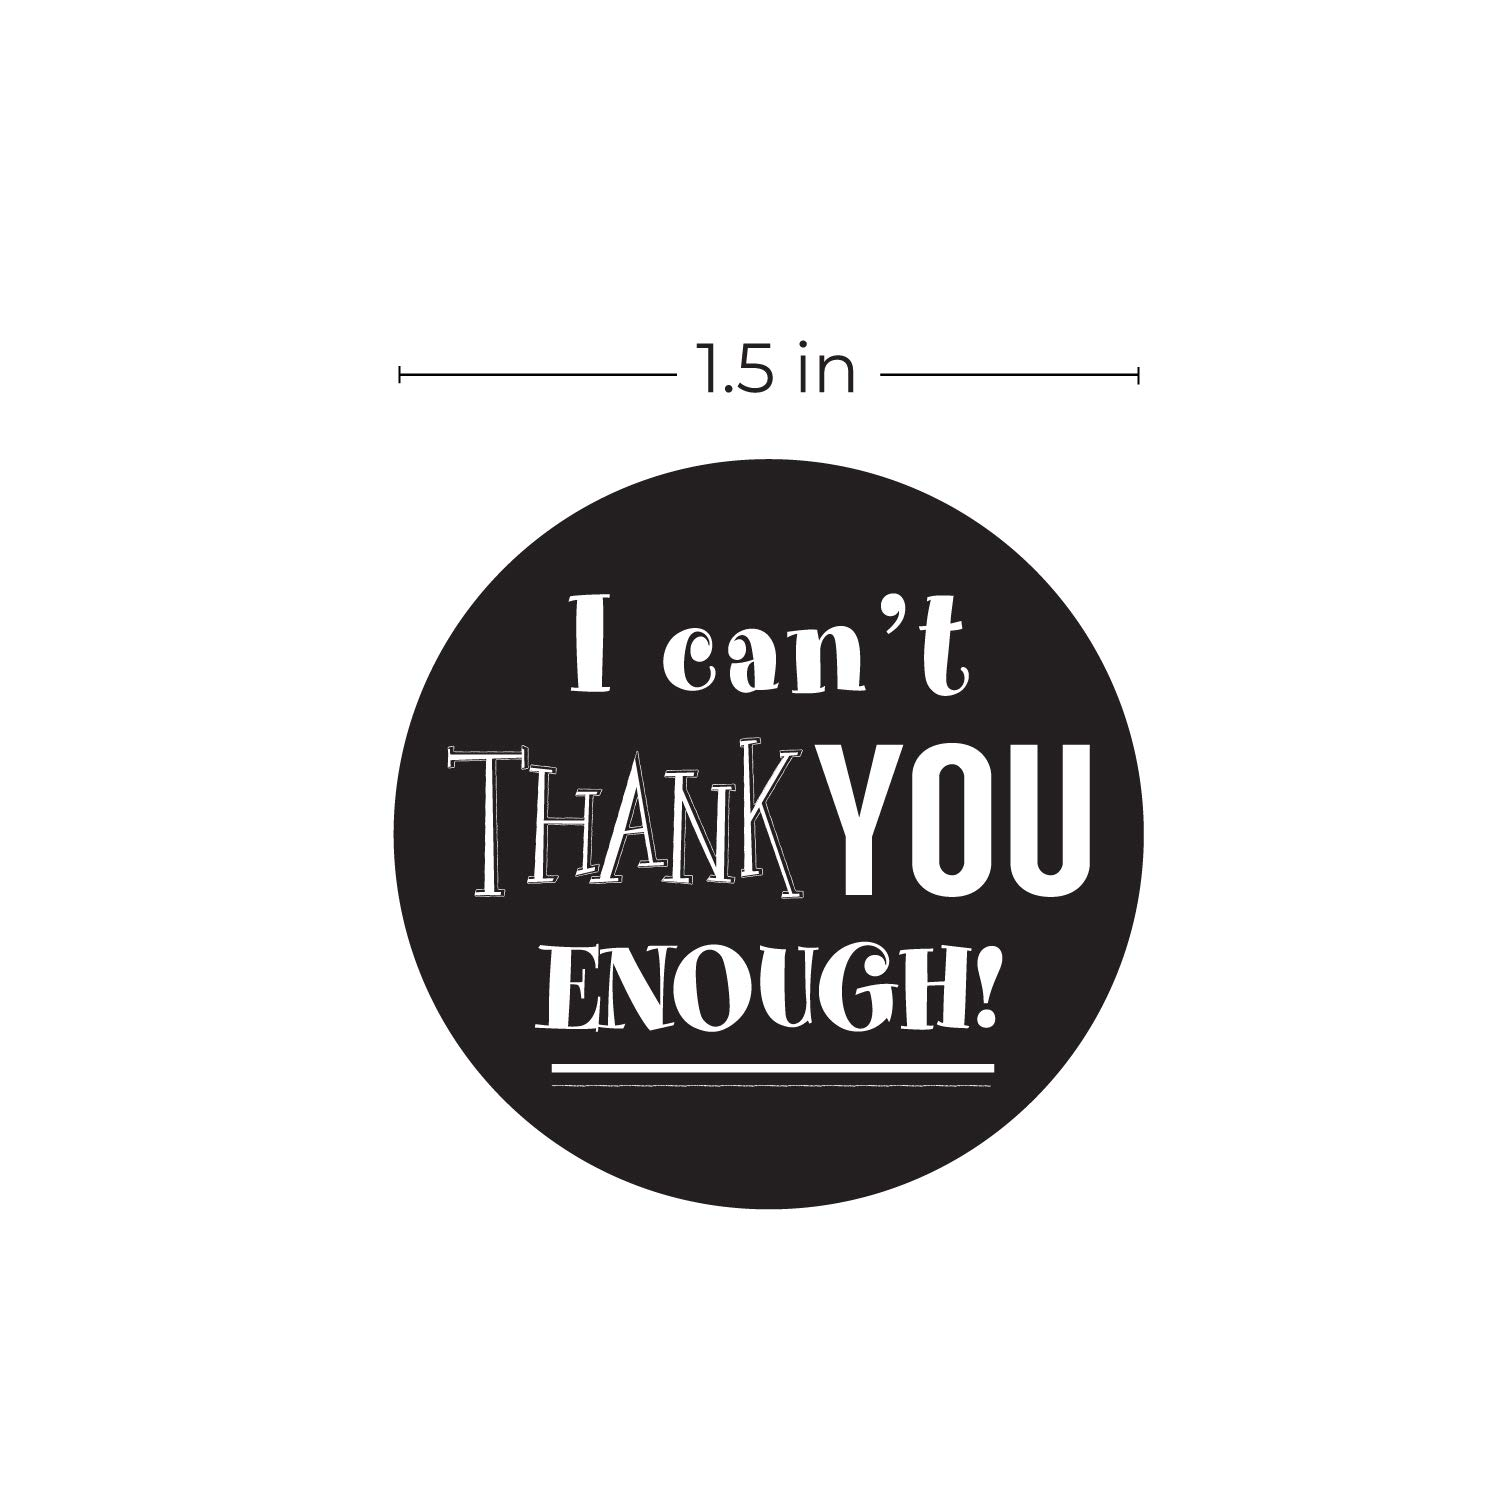 """SBLABELS Retro Chalkboard Thank You Stickers - 1.5\"""" Circle Labels / 500 per Pack 810FHtuGaIL"""